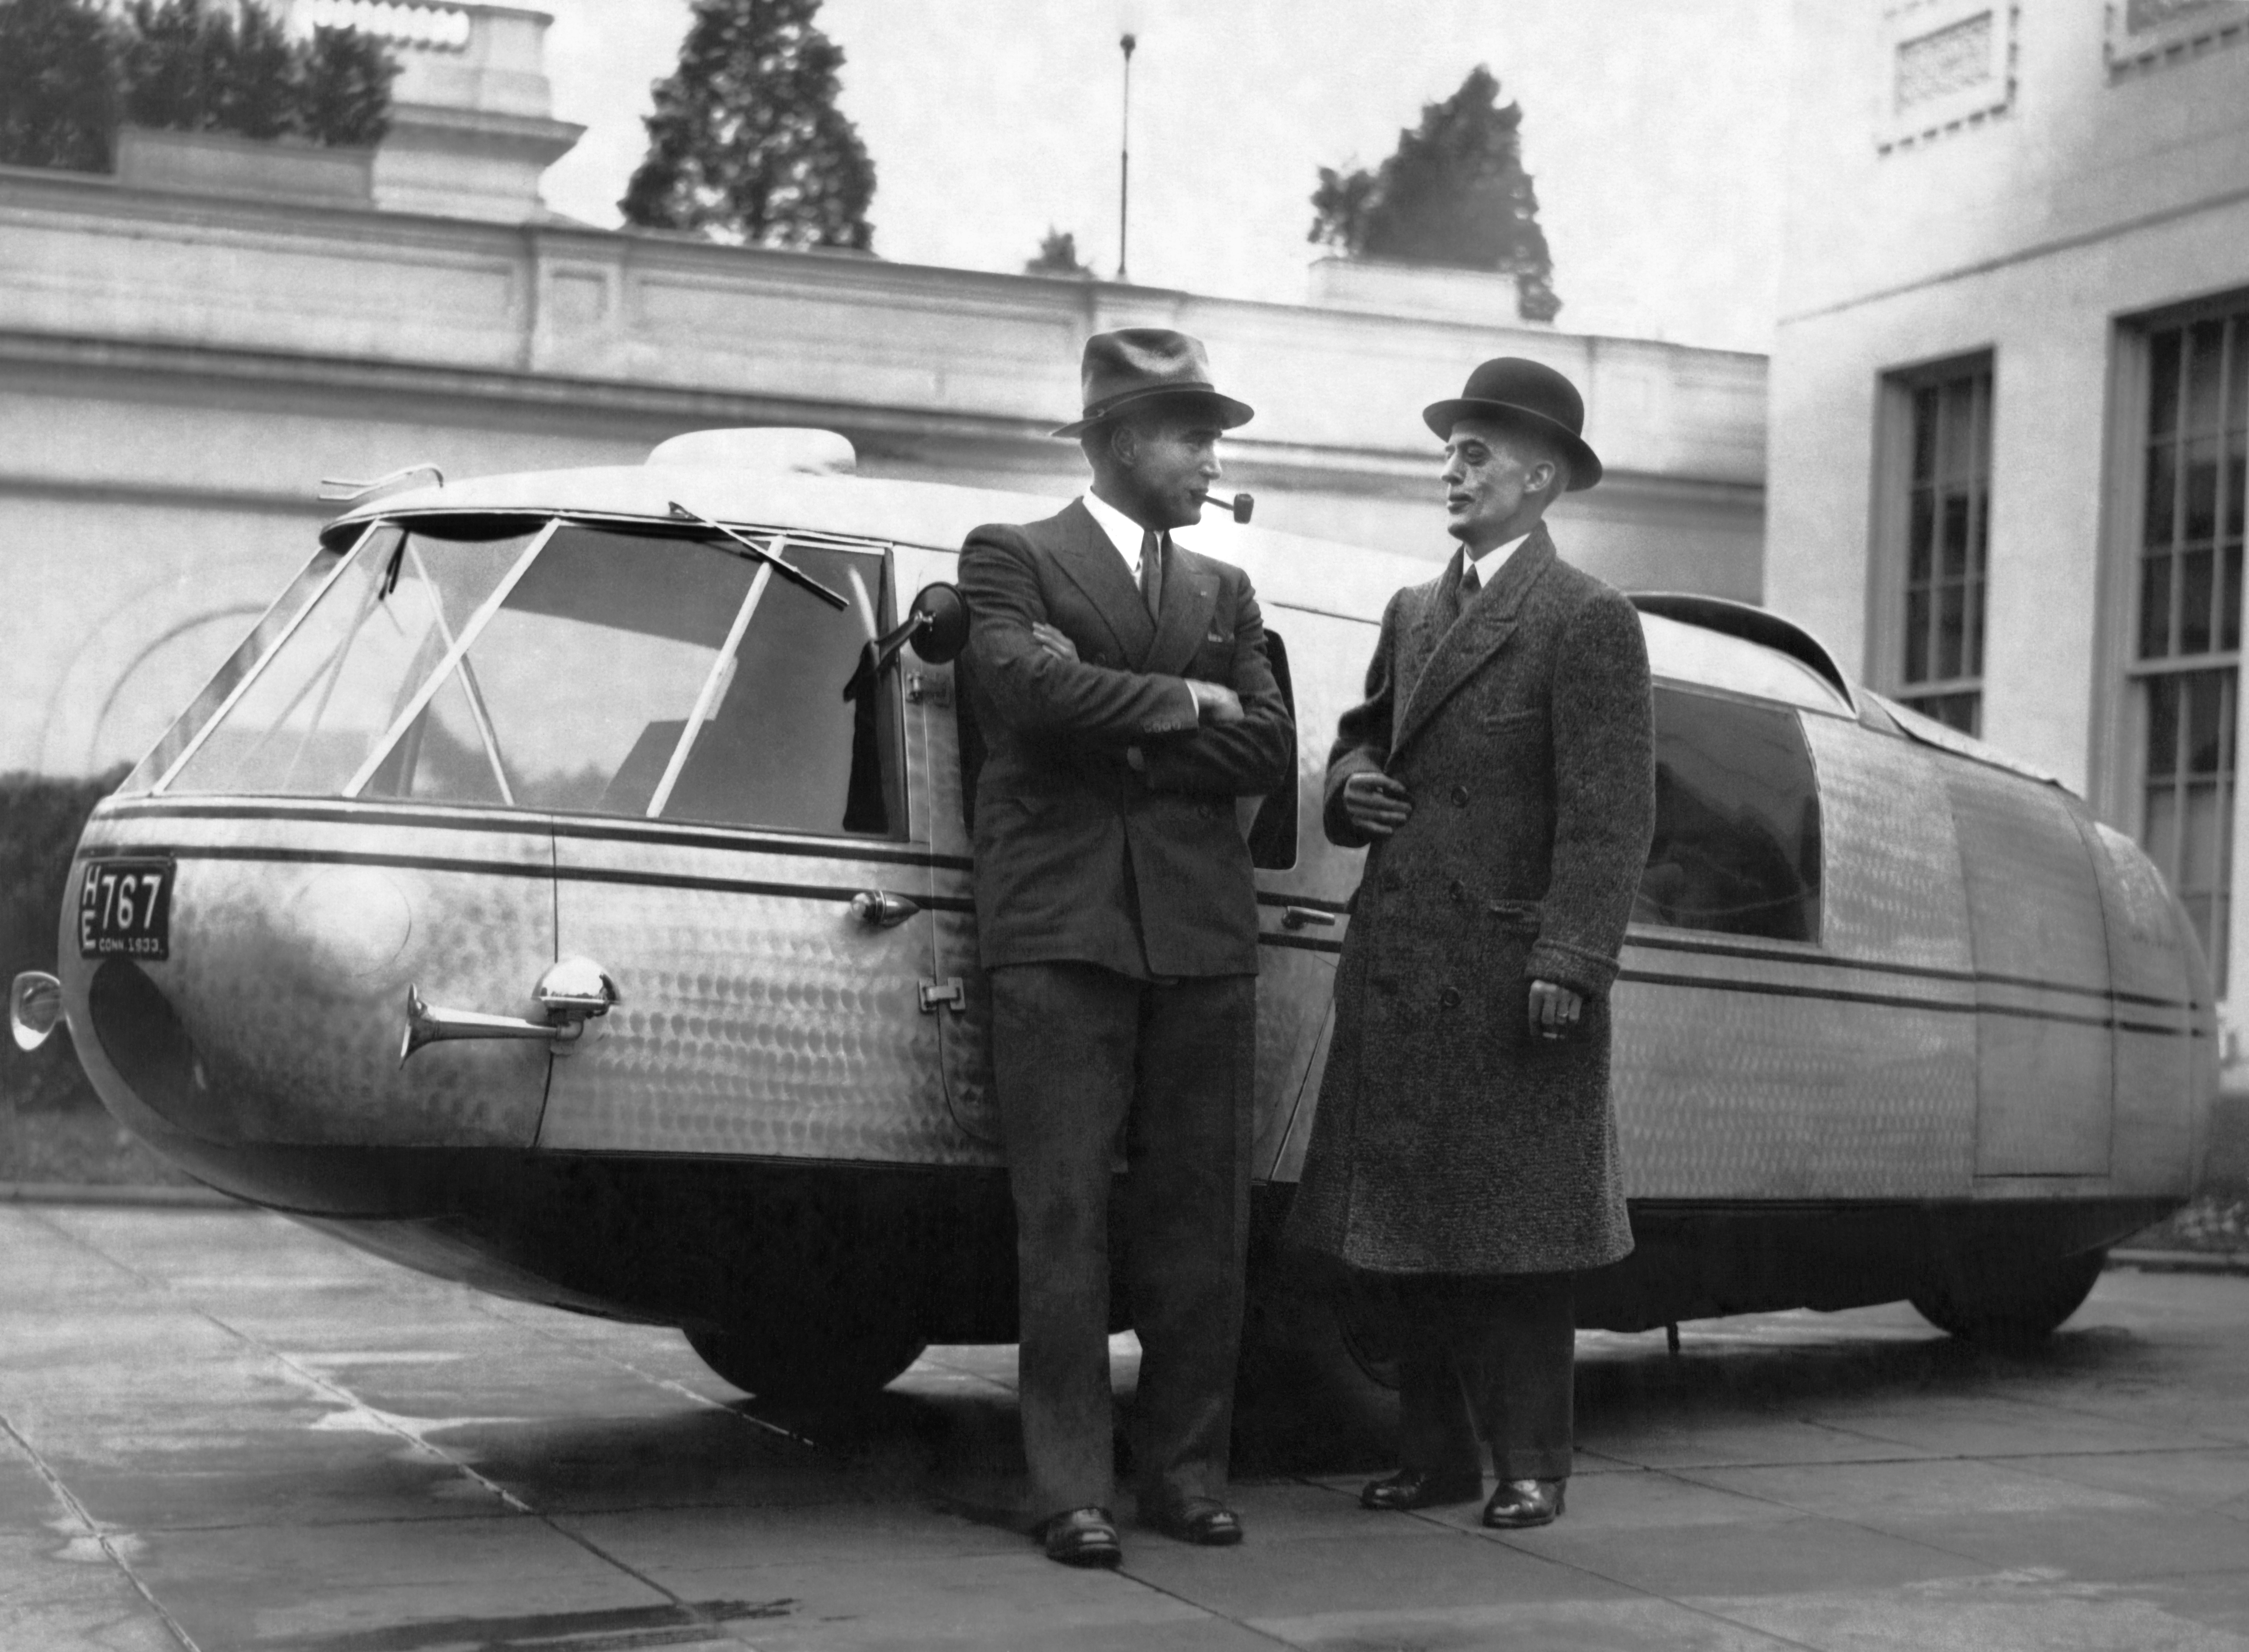 Captain Al Williams, noted speed flyer and driver, and Marvin McIntyre, Secretary to President Roosevelt, standing by the Dymaxion concept car designed by Buckminster Fuller, Washington DC, November 13, 1933. (Photo by Underwood Archives/Getty Images)